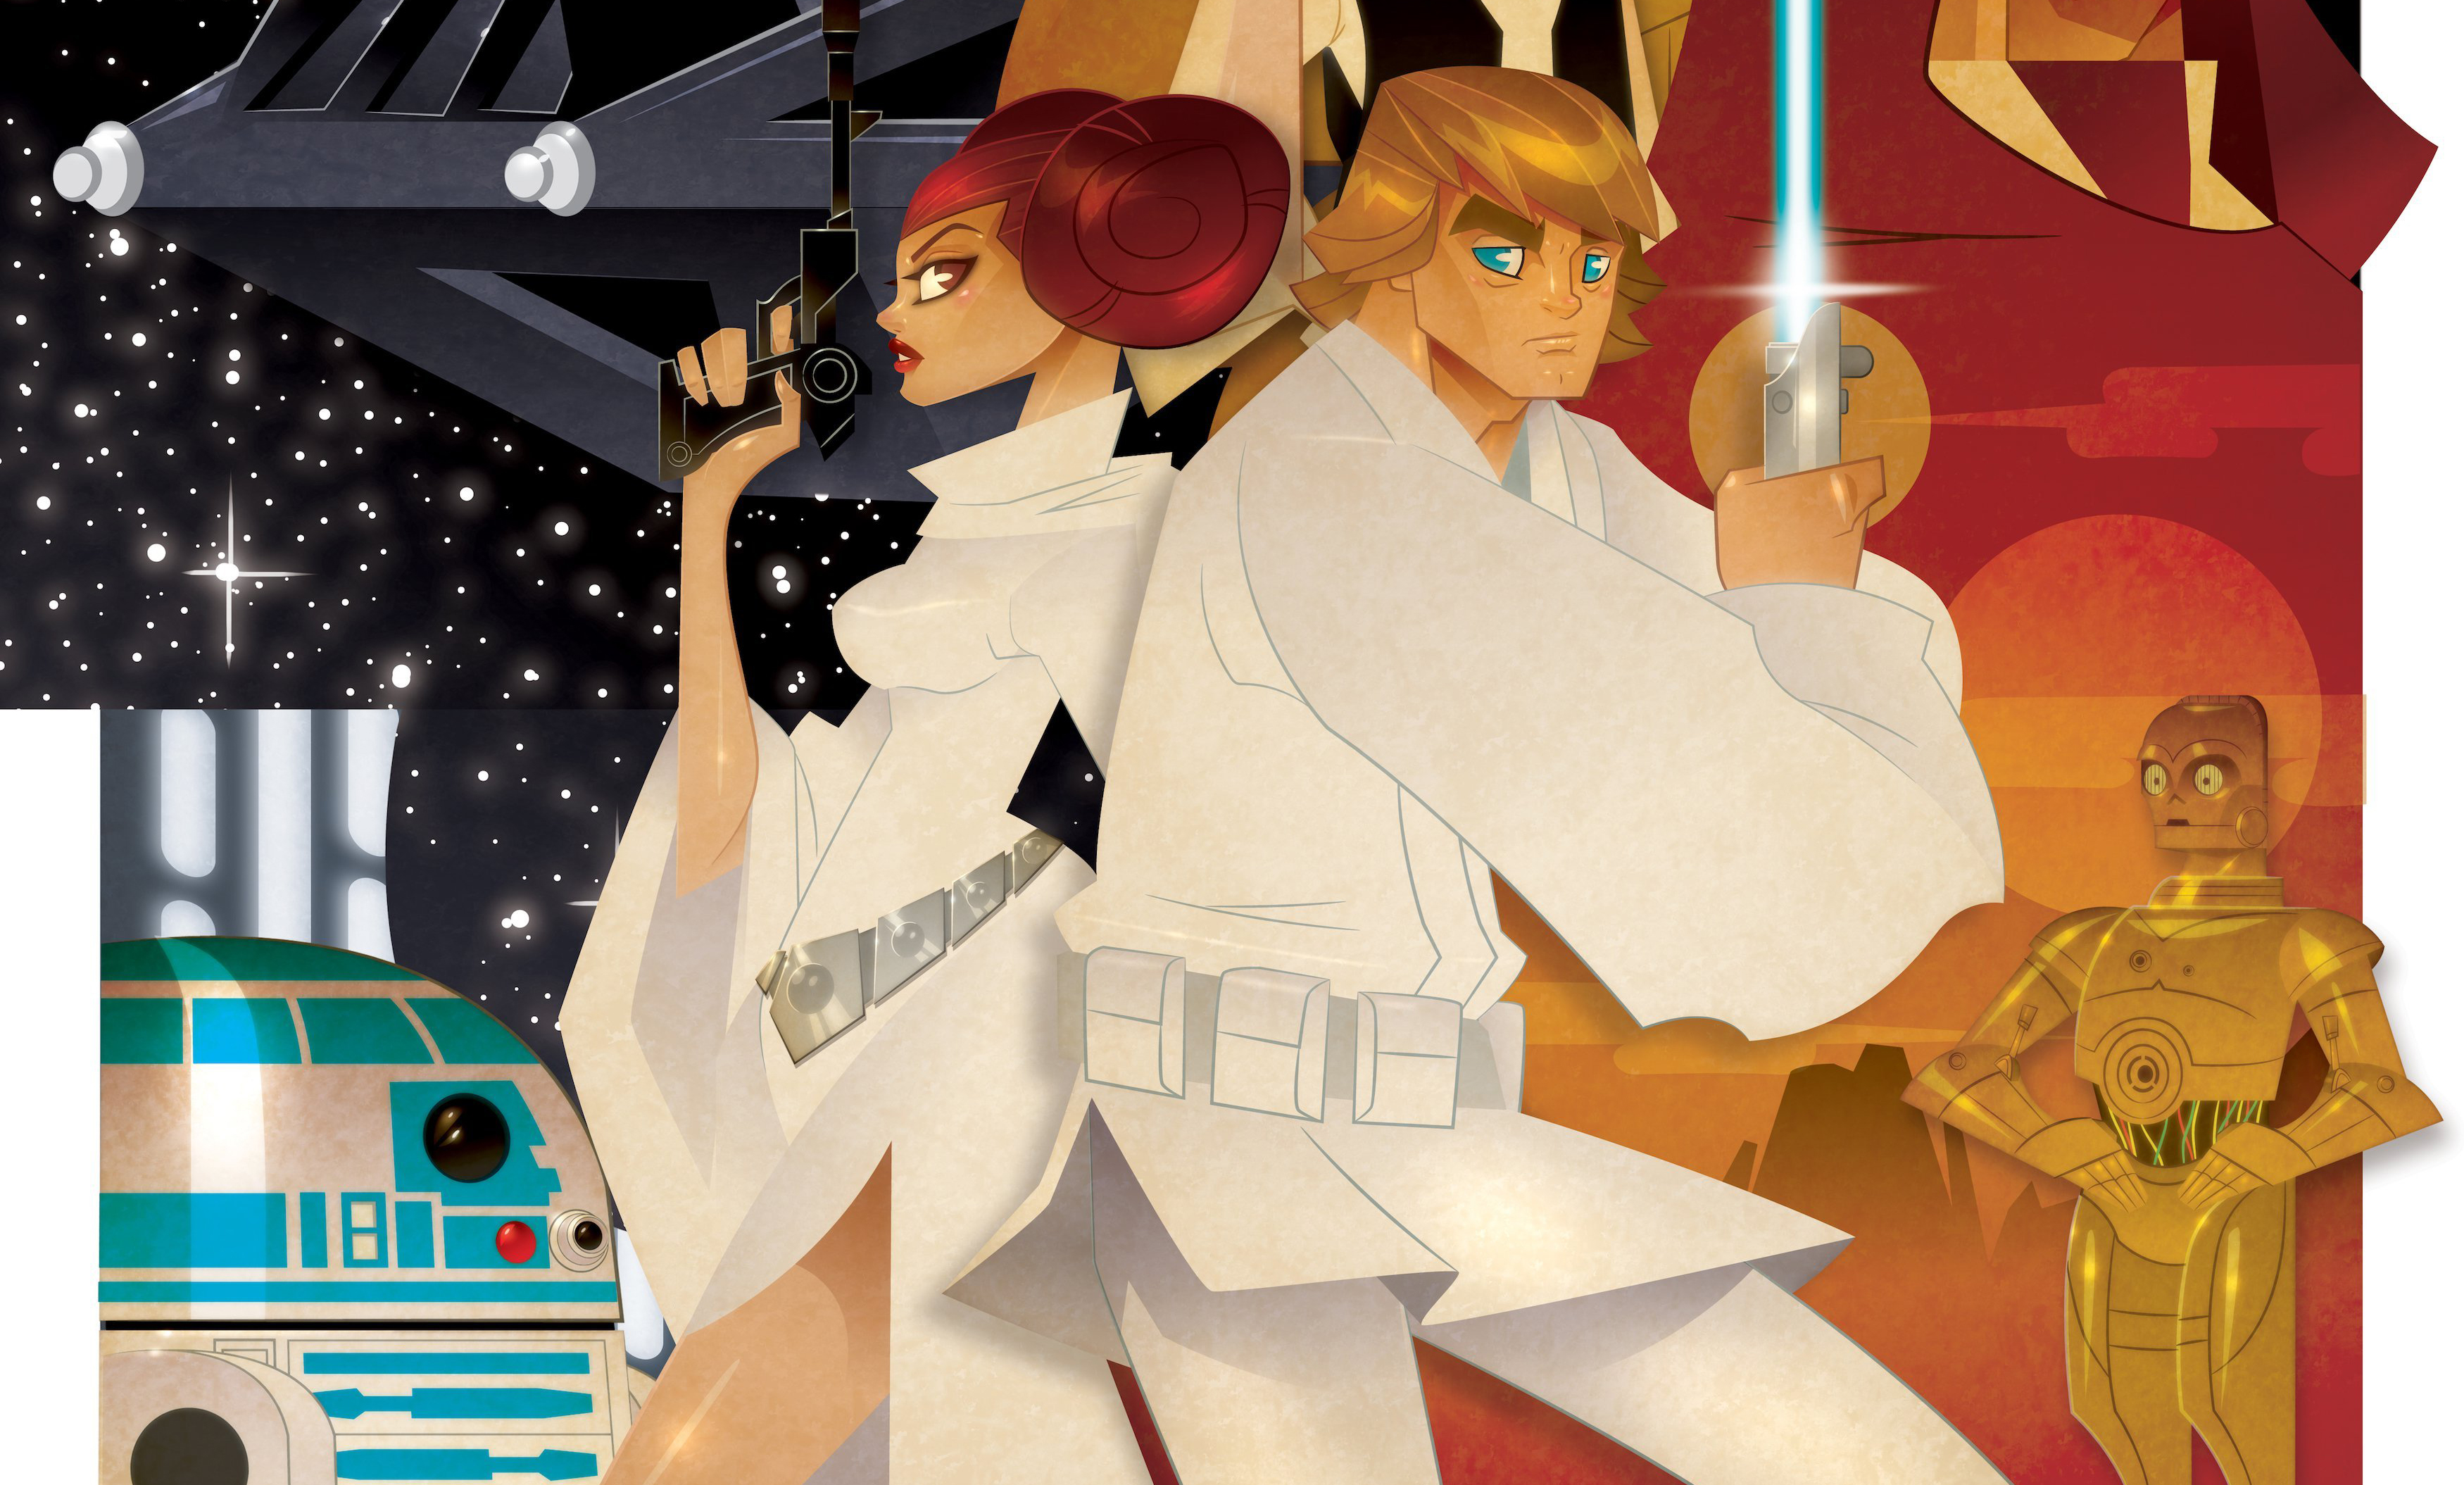 princess leia and luke skywalker star wars bu